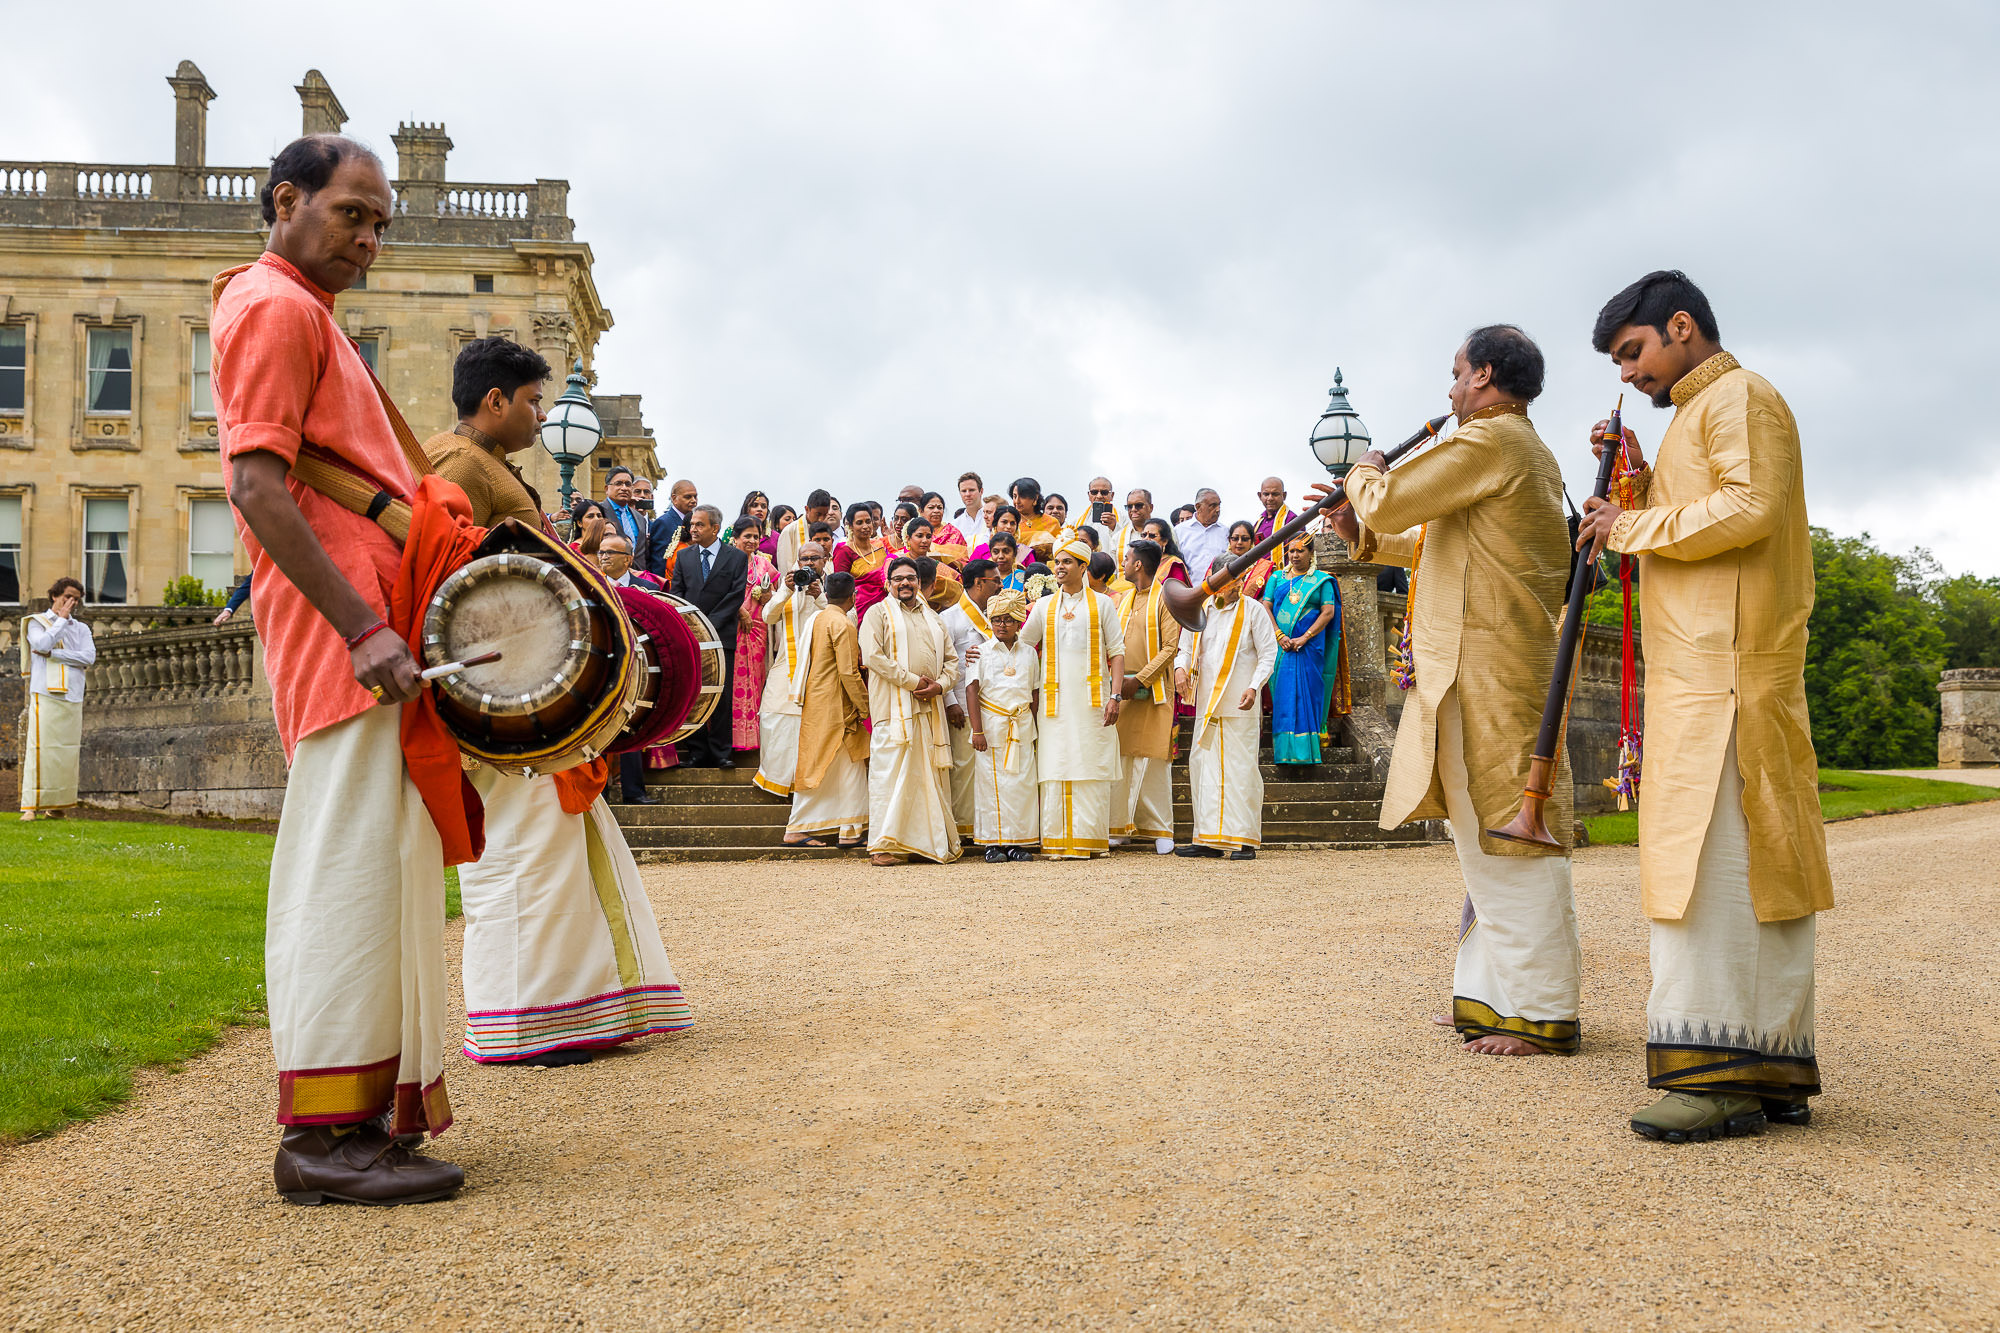 asian-wedding-hindu-tamil-photographer-heythorpe-oxford-0029.jpg